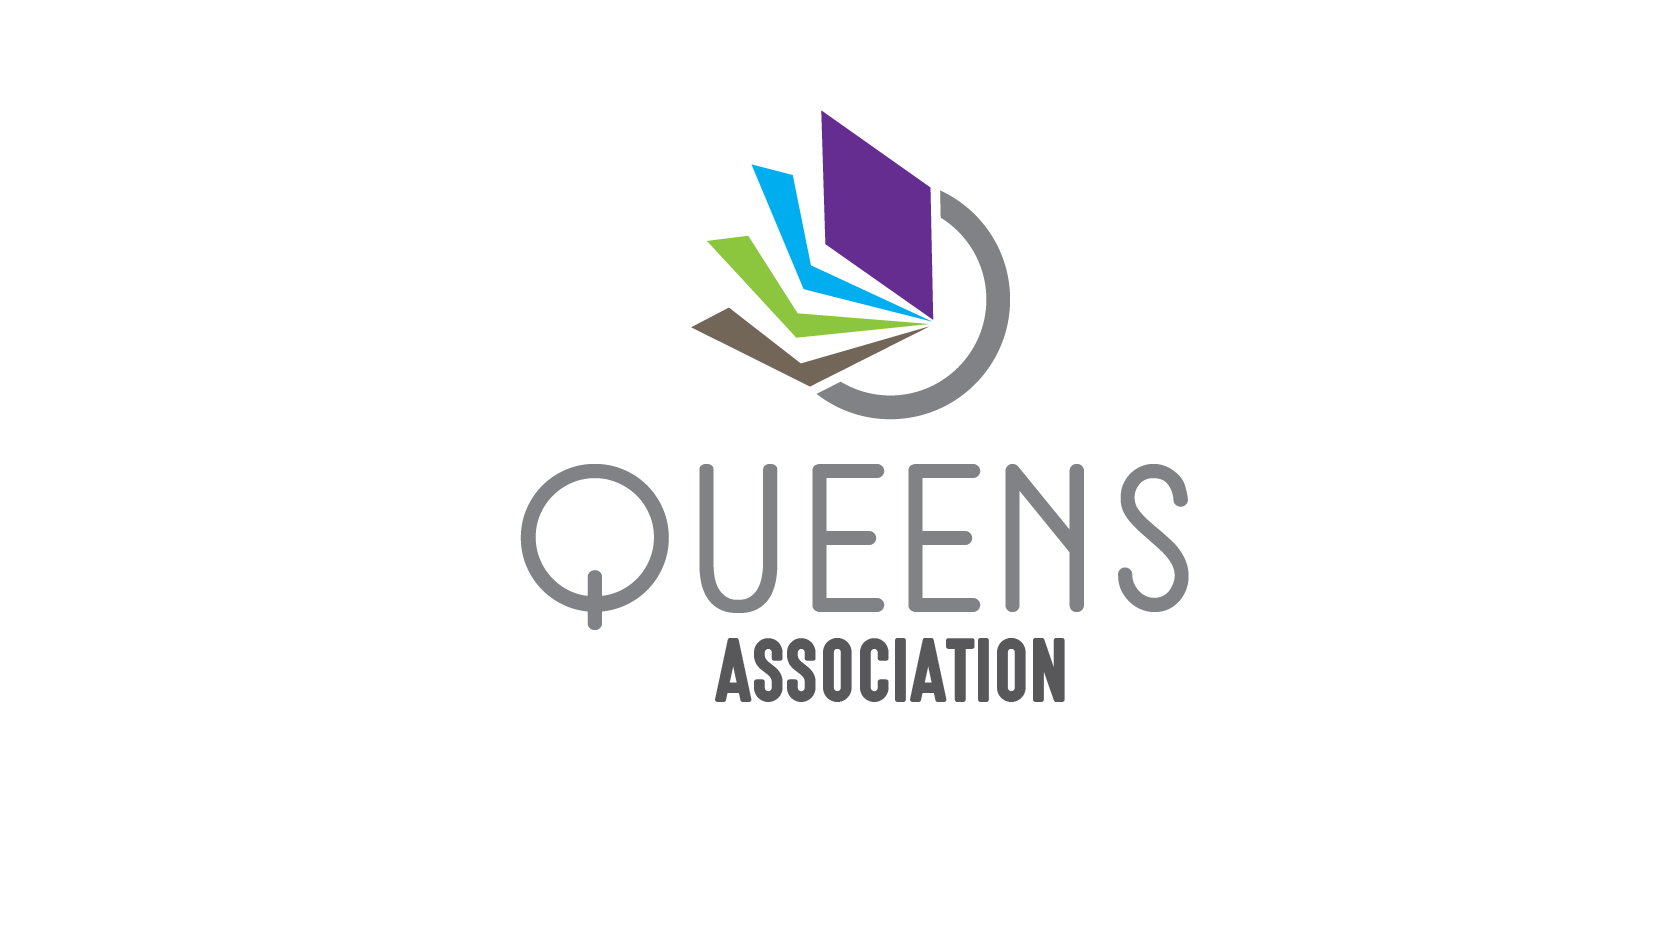 QueensAssociation.com